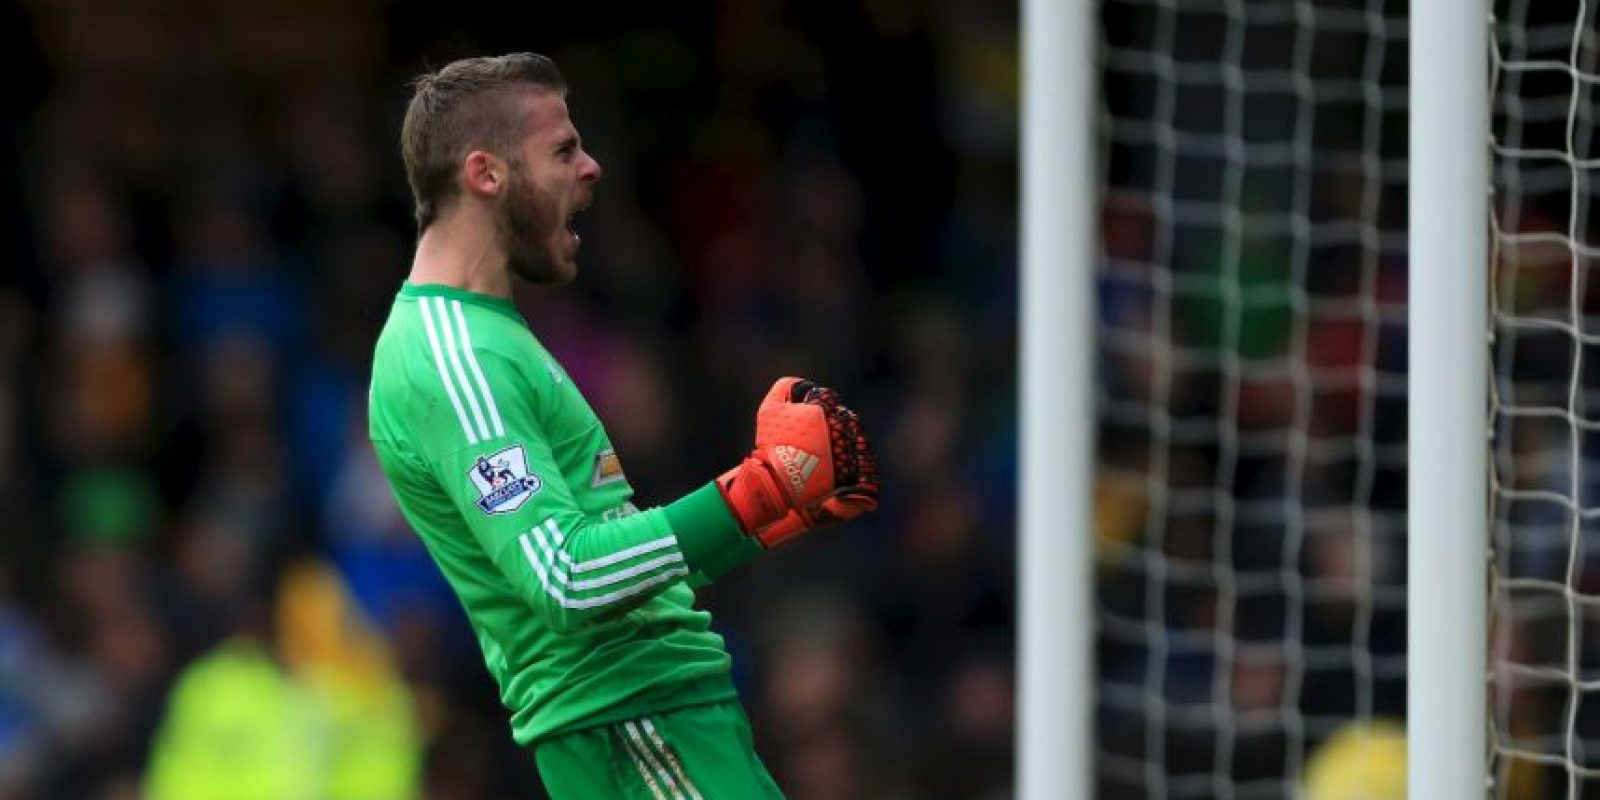 David De Gea (España, Manchester United, 25 años) Foto: Getty Images